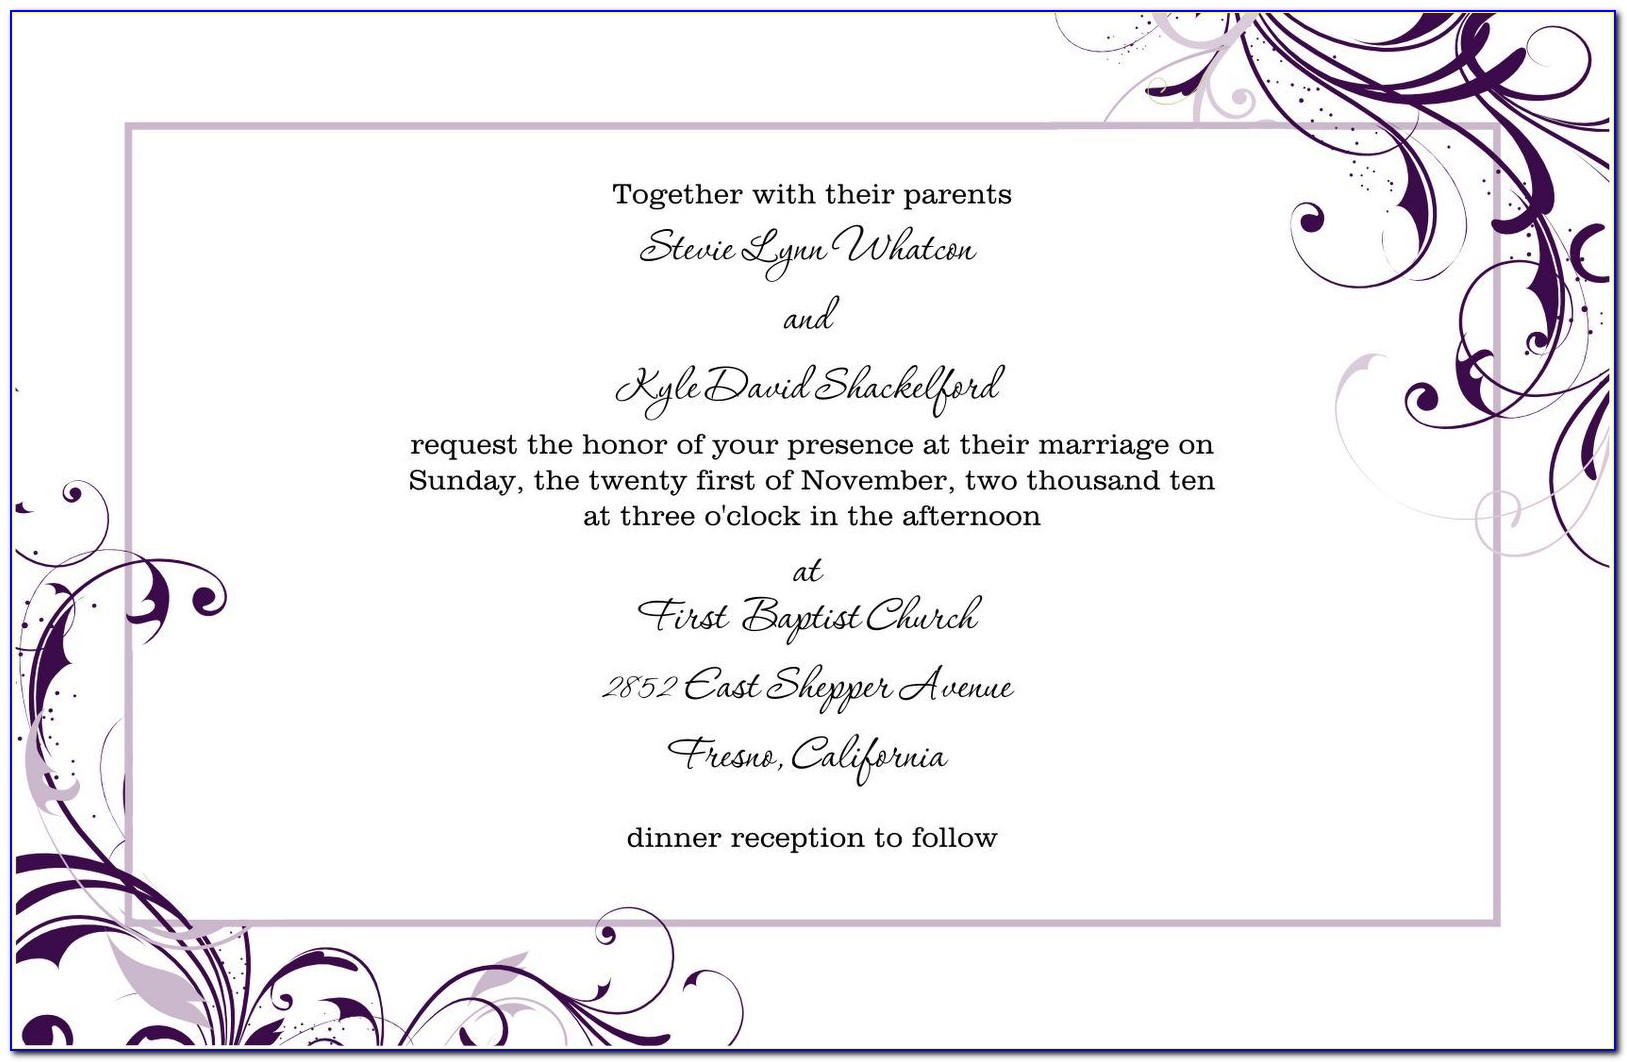 Blank Invitation Templates For Microsoft Word Free Download